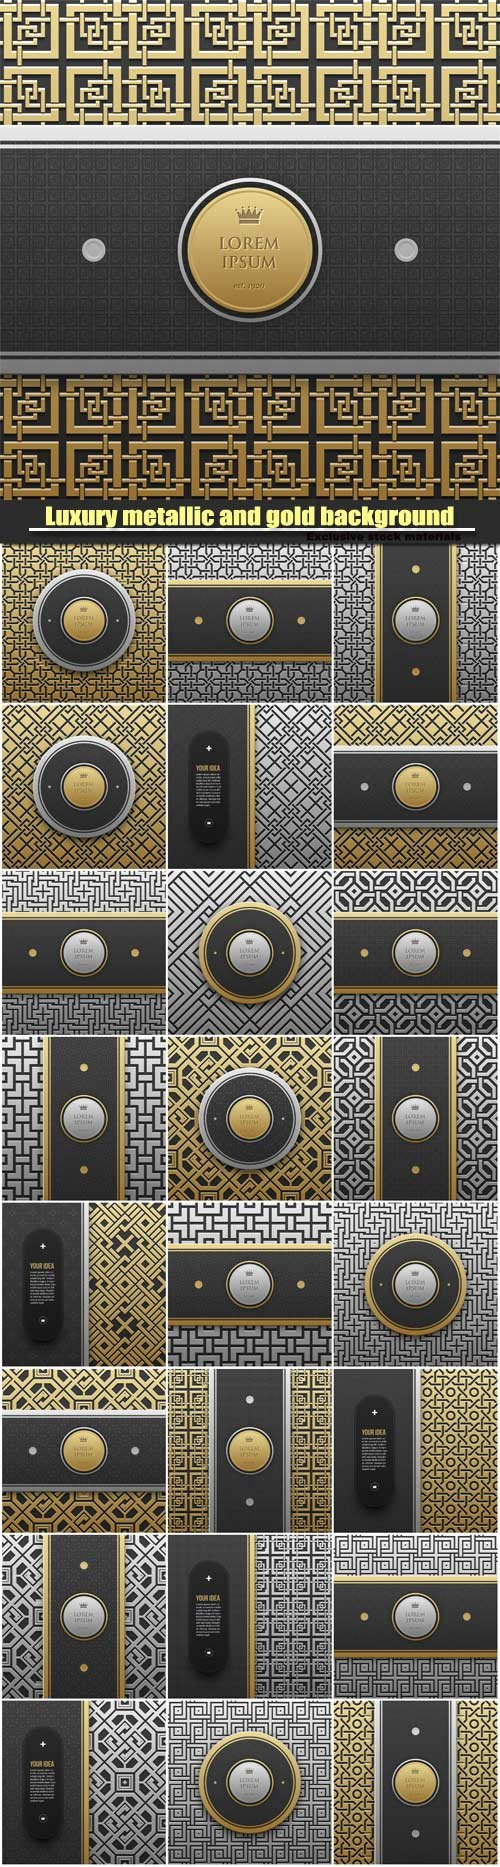 Luxury metallic and gold background with seamless geometric pattern